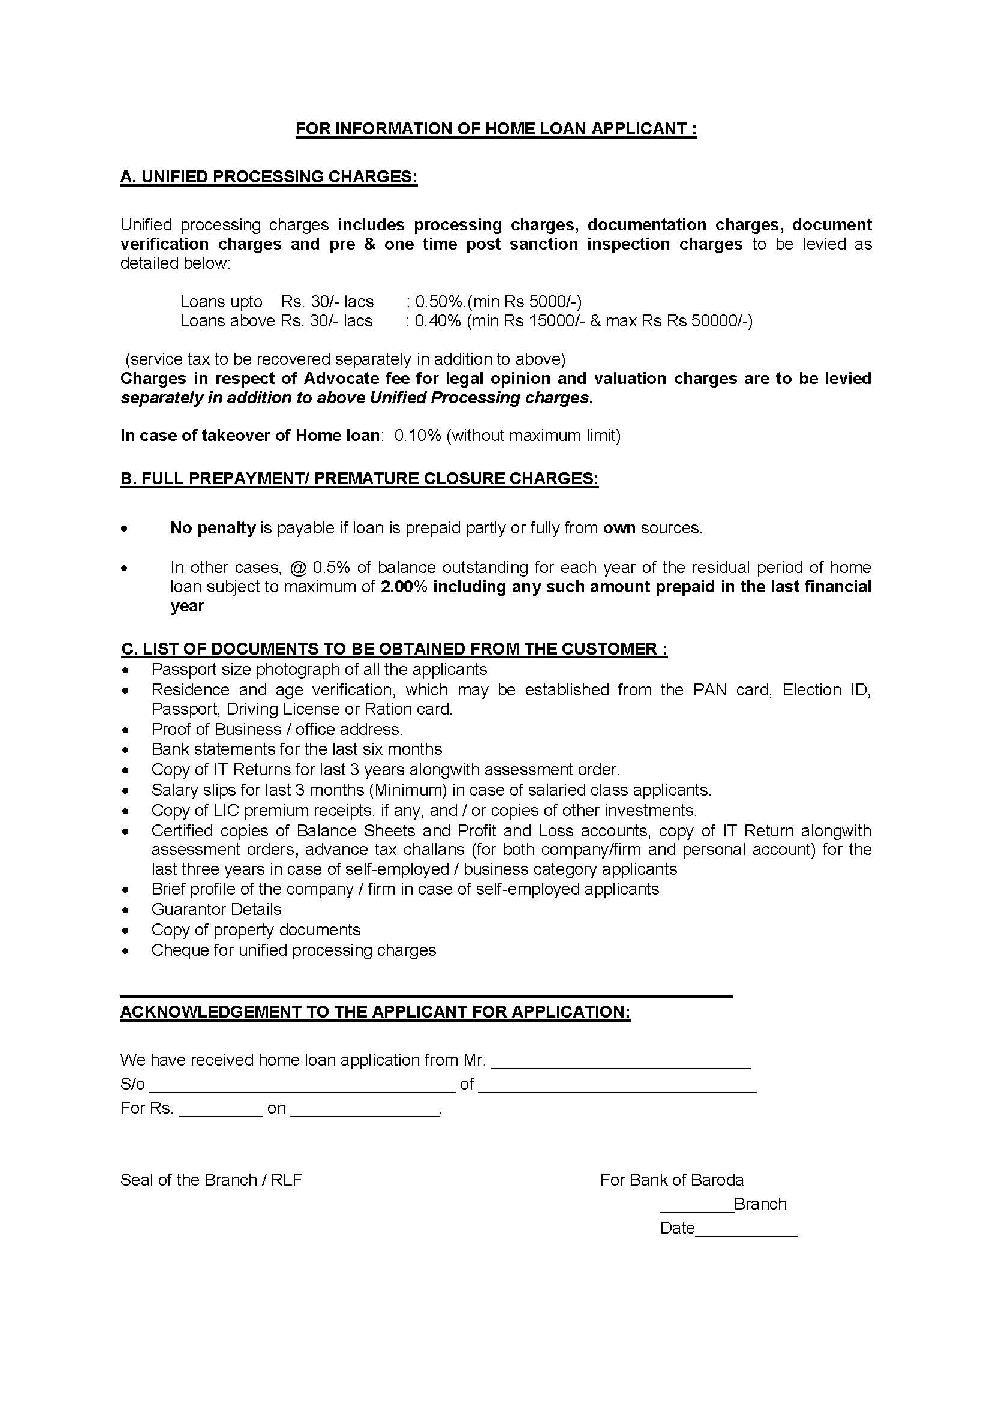 essay rescore request form Chapter 1: the new open-ended items rescore request form for parent network new in the indiana parent network for 2015 is the open-ended items rescore request form in prior years, parents and guardians were required to call their school administrators to request a rescore after.